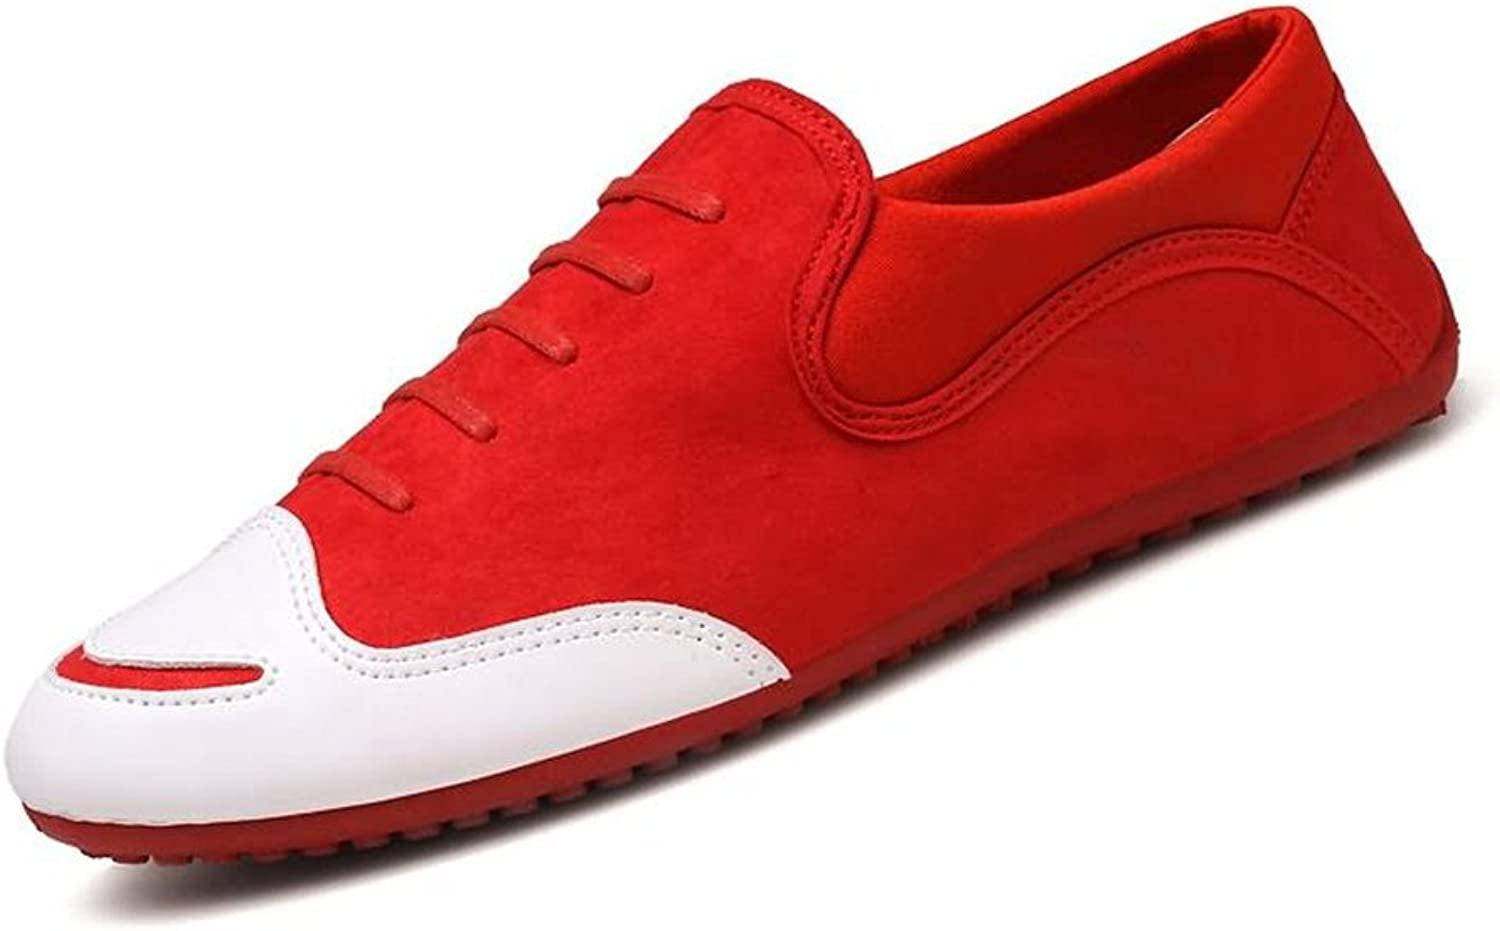 CHENDX shoes, Men's Fashion design Round toe Loafer Flat Heel Solid color Slip On shoes (color   Red, Size   8.5 UK)